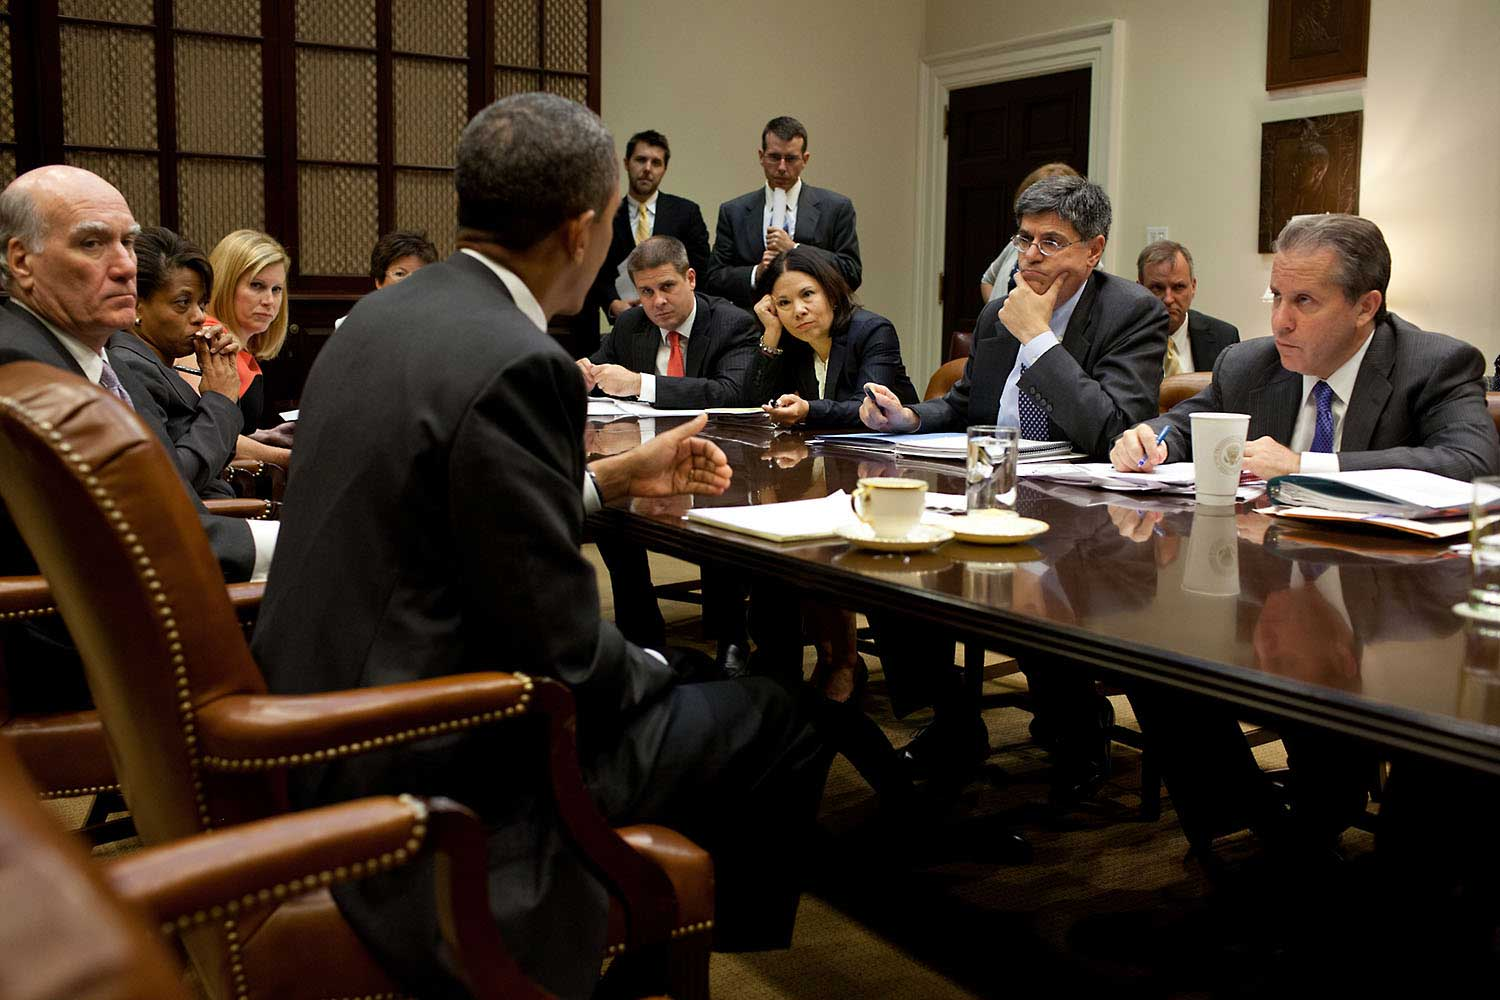 White House aides listen as President Obama makes a point during a meeting in the Roosevelt Room of the White House, Sept. 7, 2011.